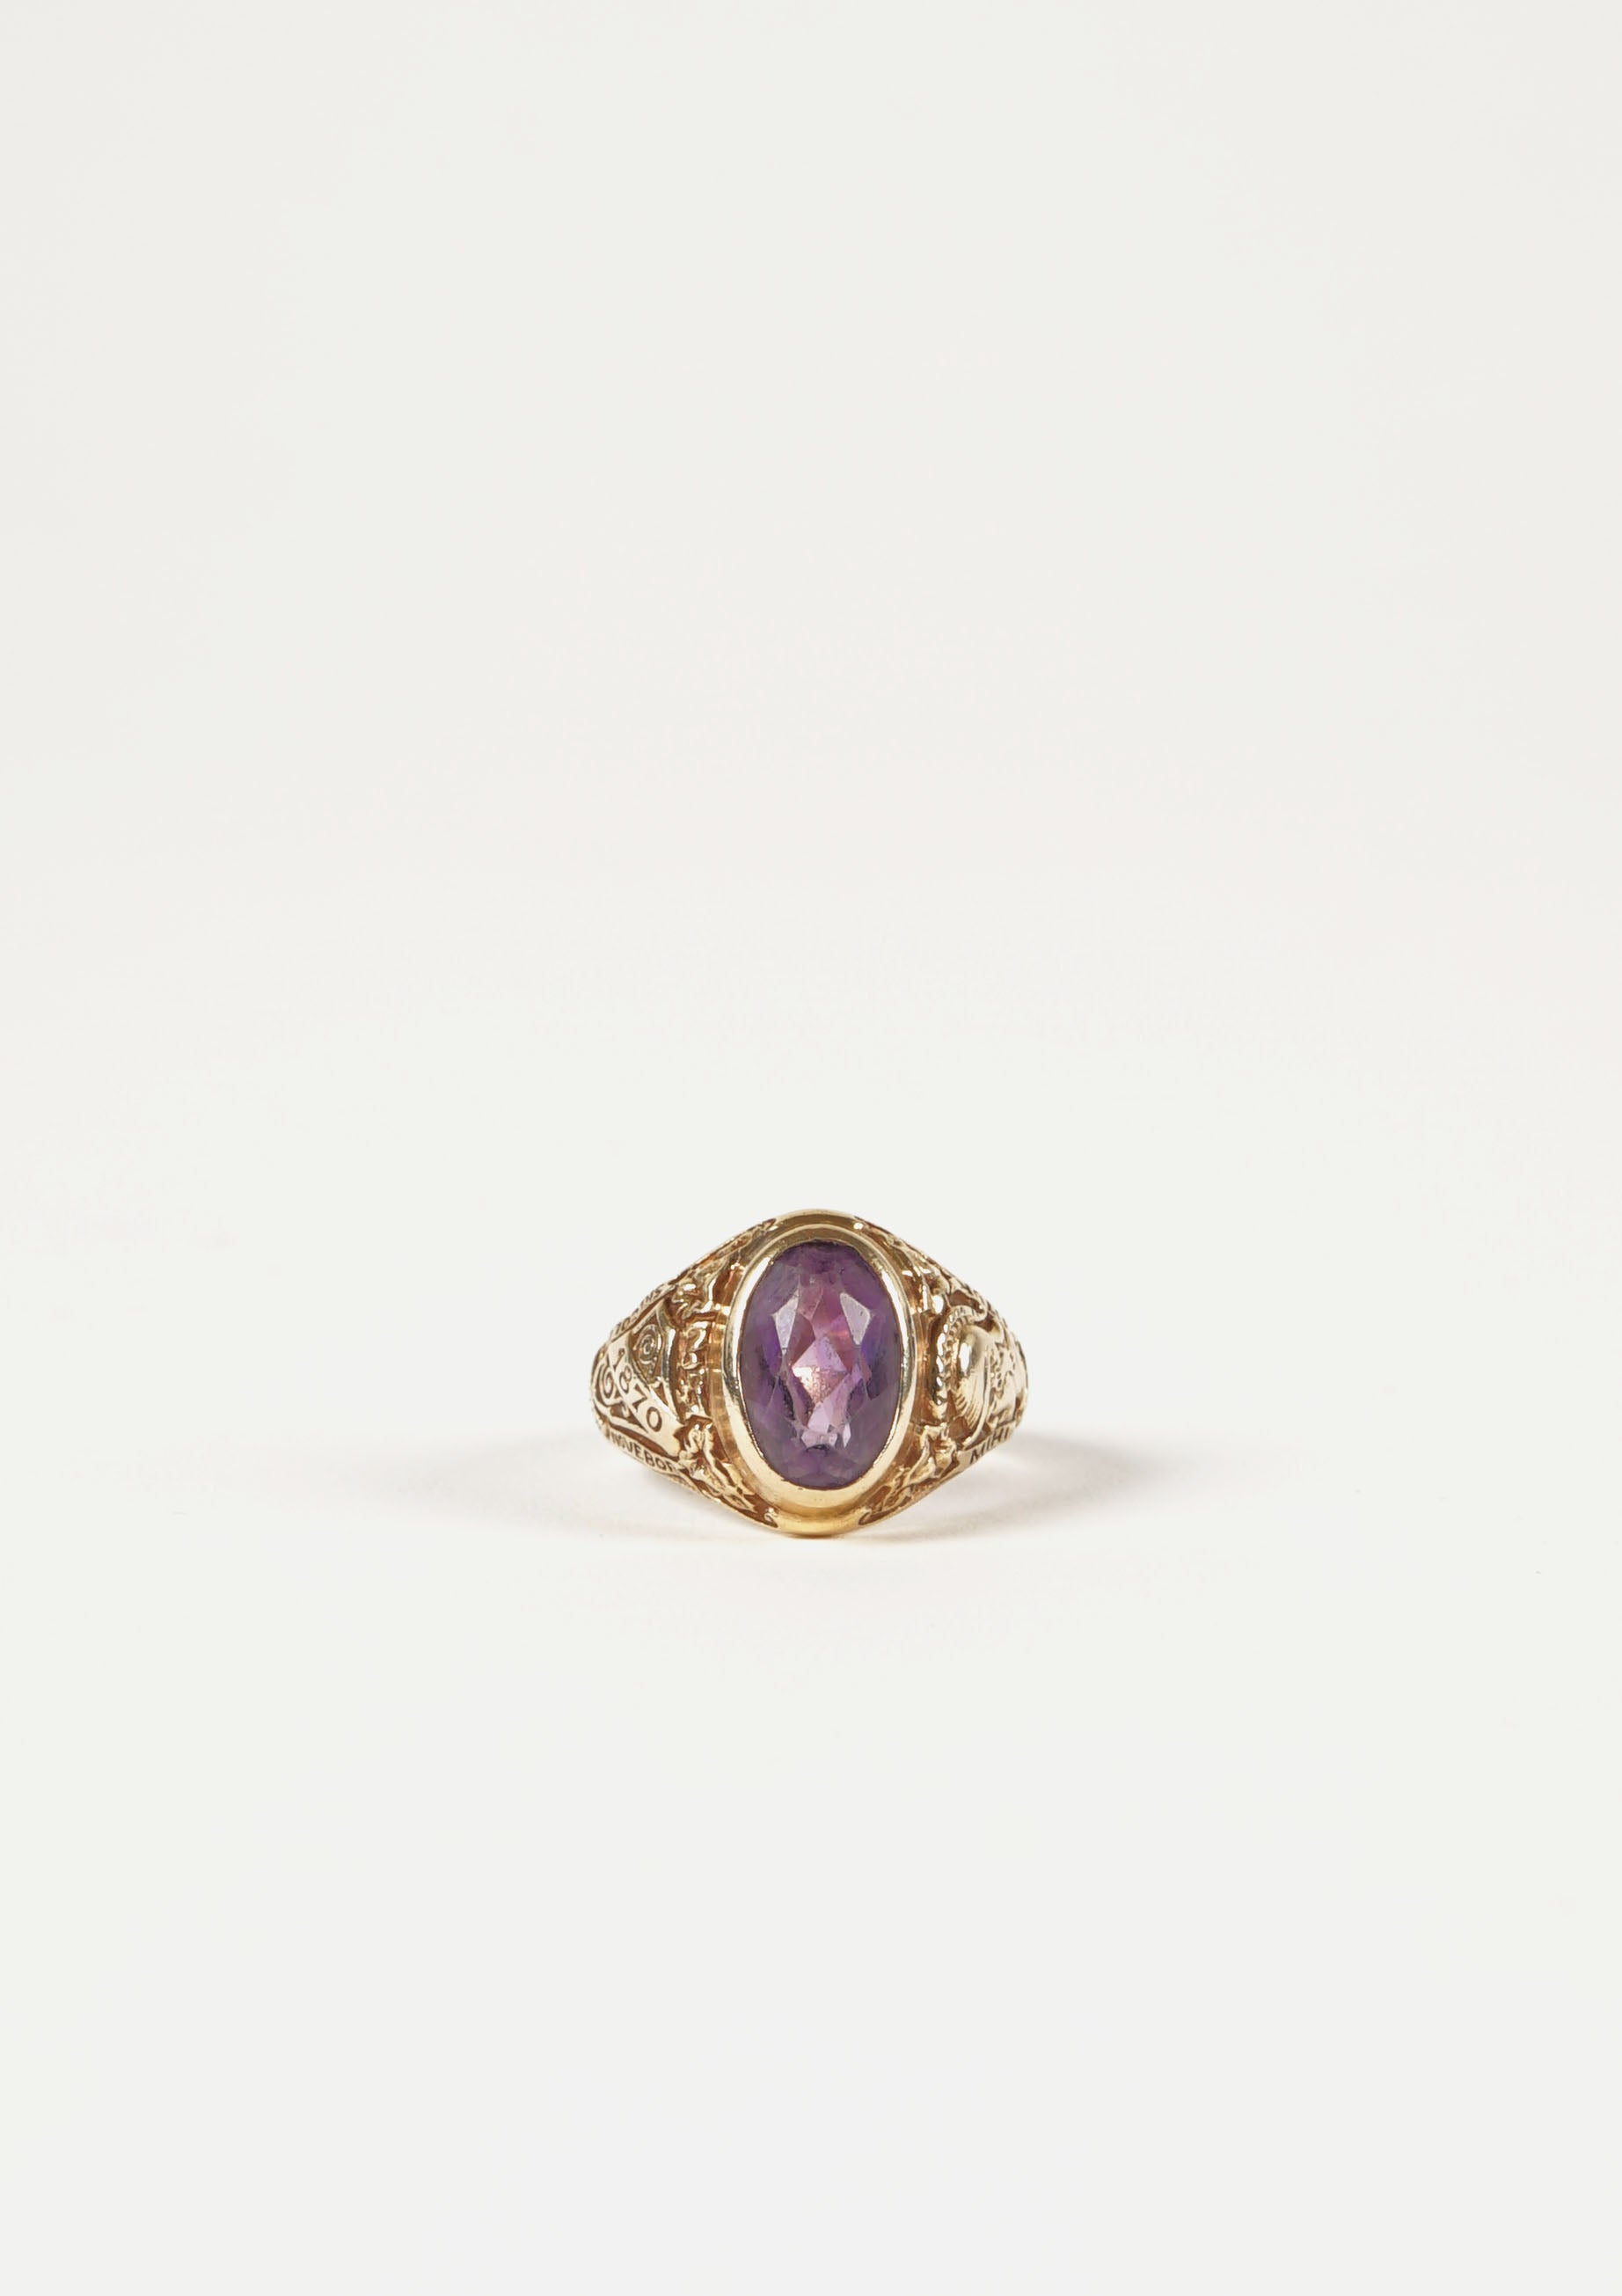 14k Gold w/ Purple Tourmaline College Ring